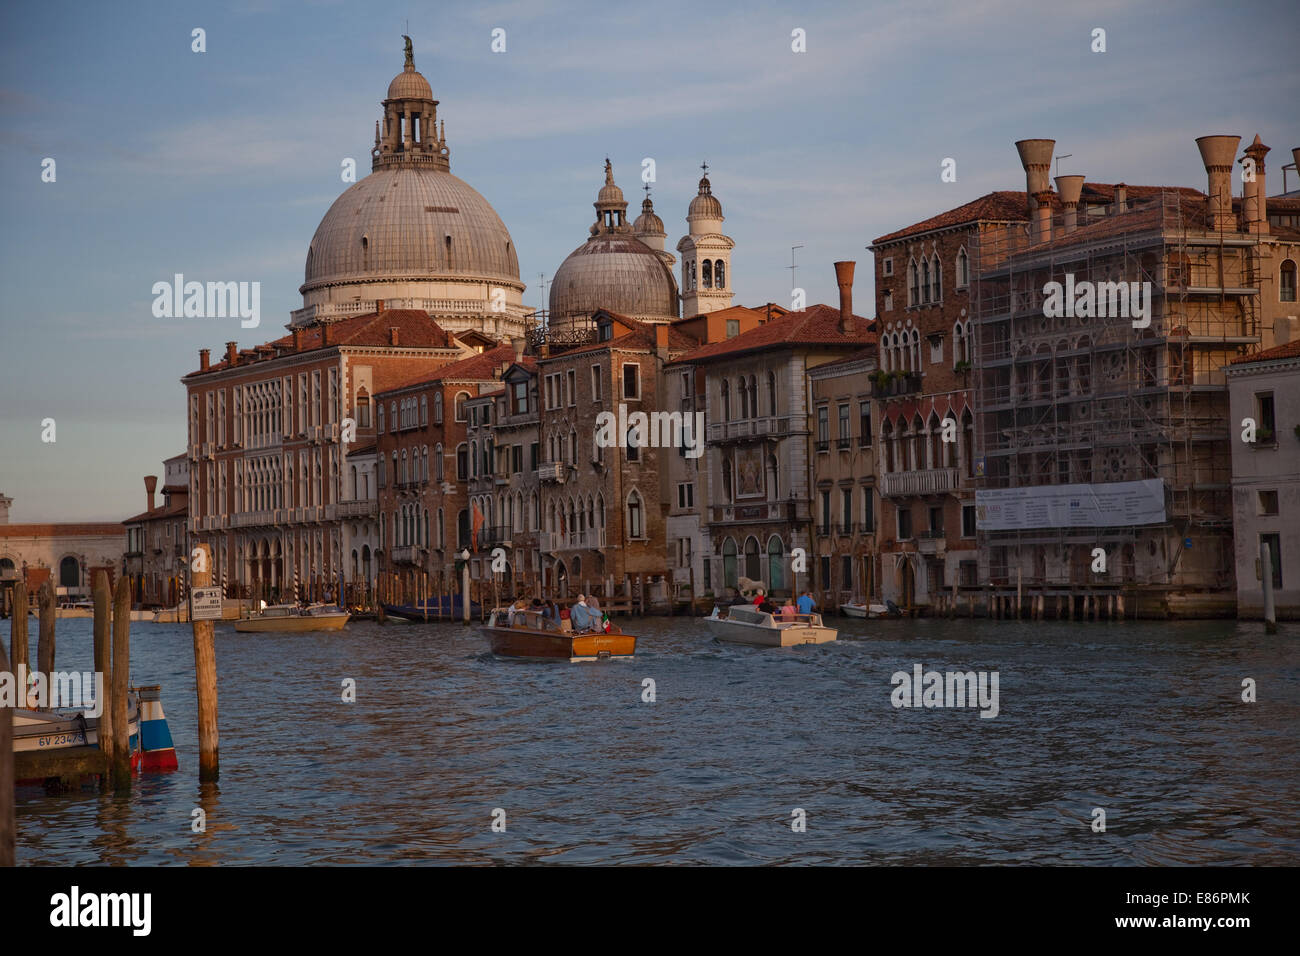 Venice and its, grand canal basks, in the warmth,of the late afternoon sun, While water taxis,ply their trade on - Stock Image